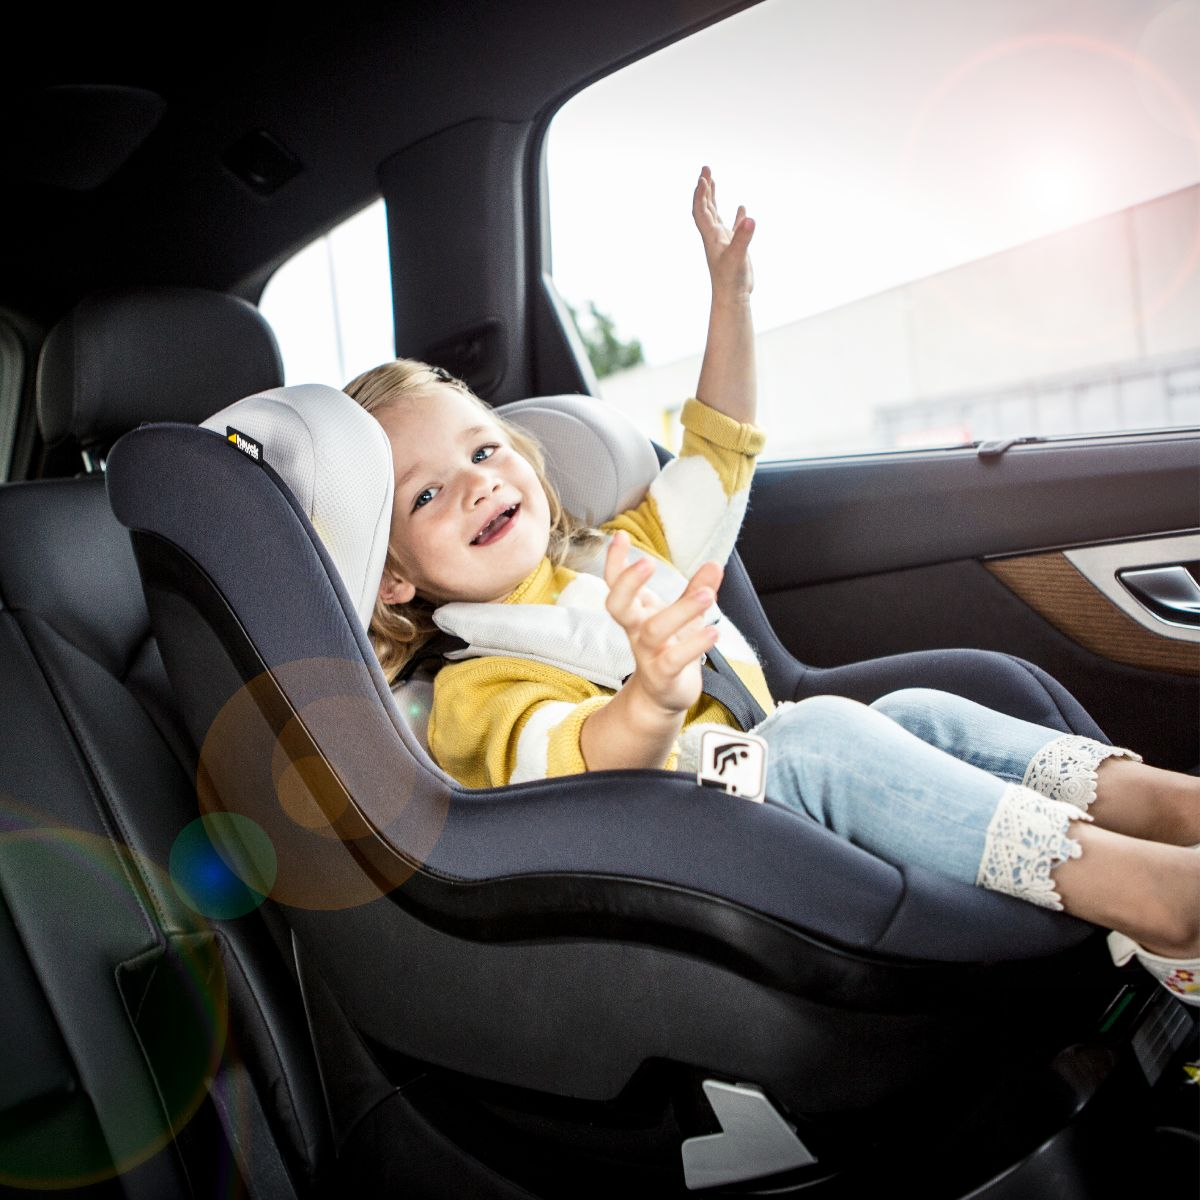 Child Car Seat Usa Carseat Hashtag On Twitter